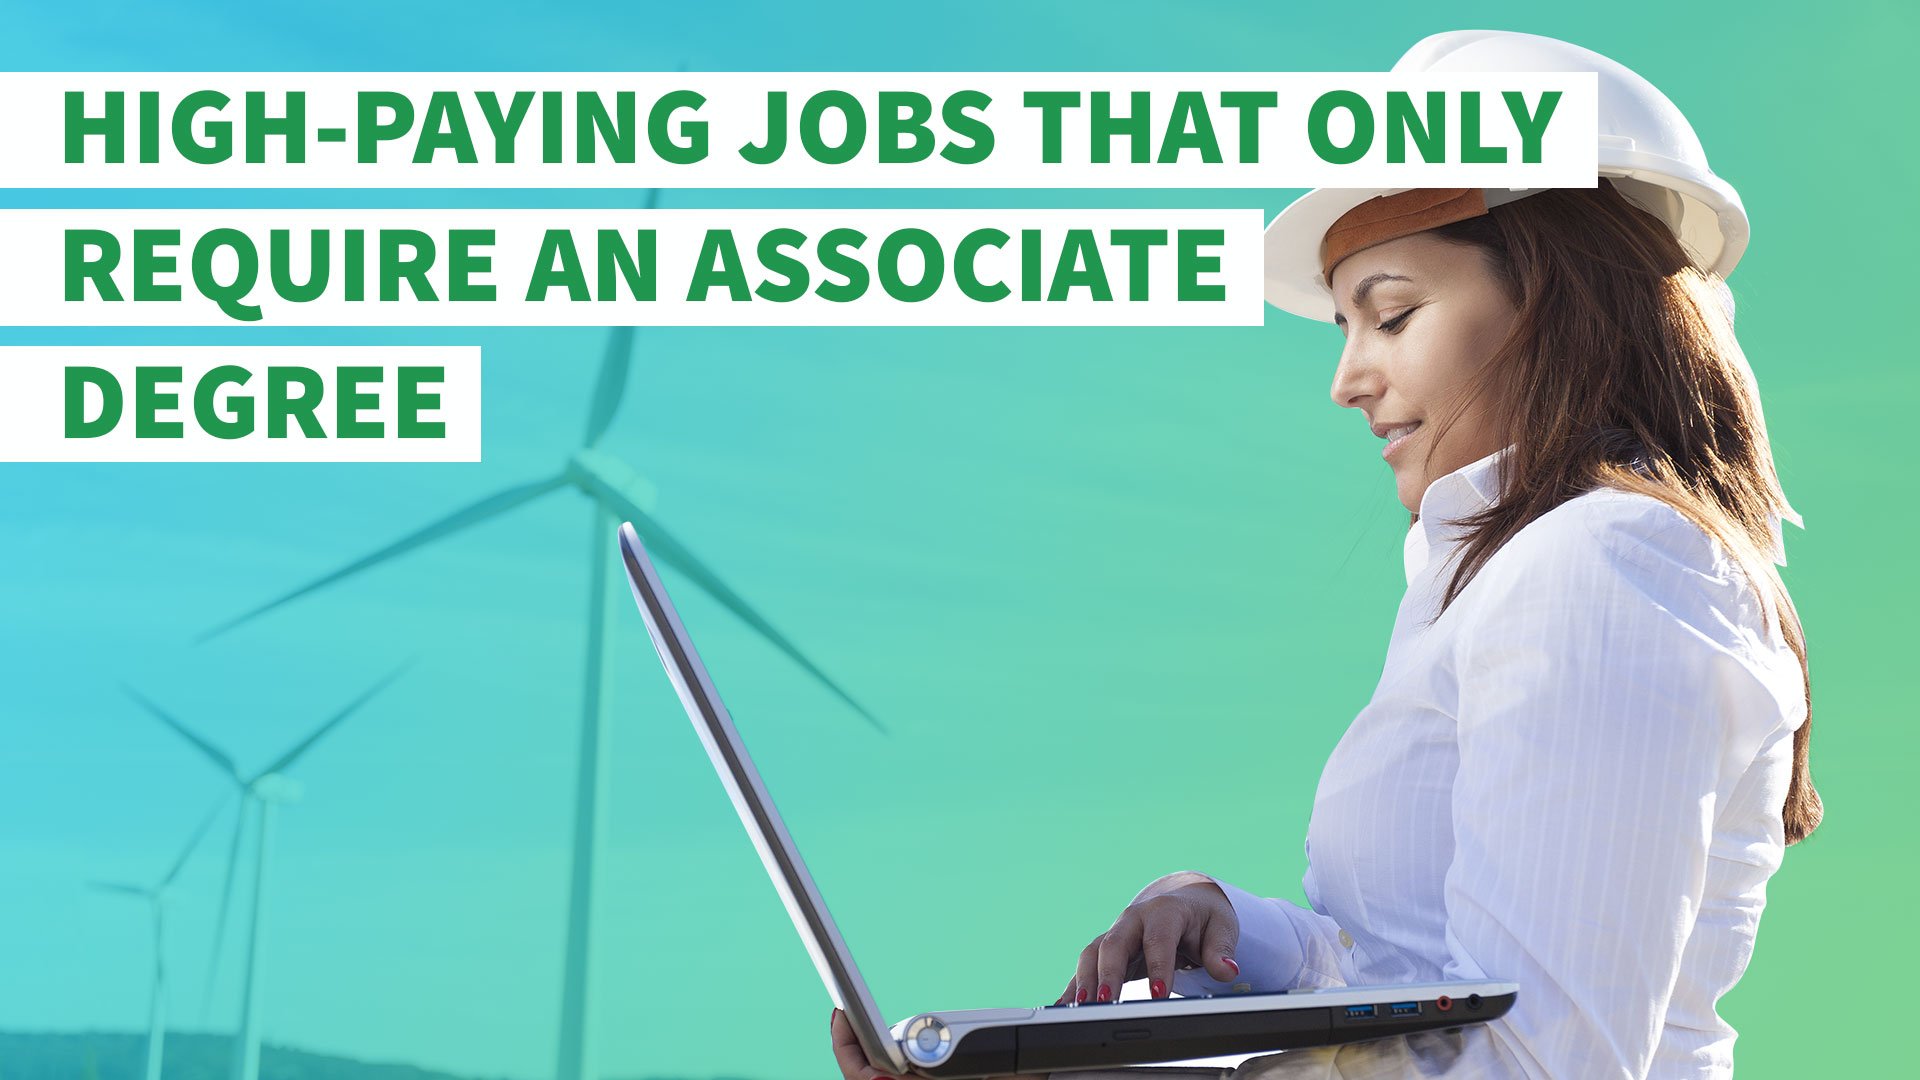 12 high paying jobs that only require an associate degree 12 high paying jobs that only require an associate degree gobankingrates xflitez Choice Image